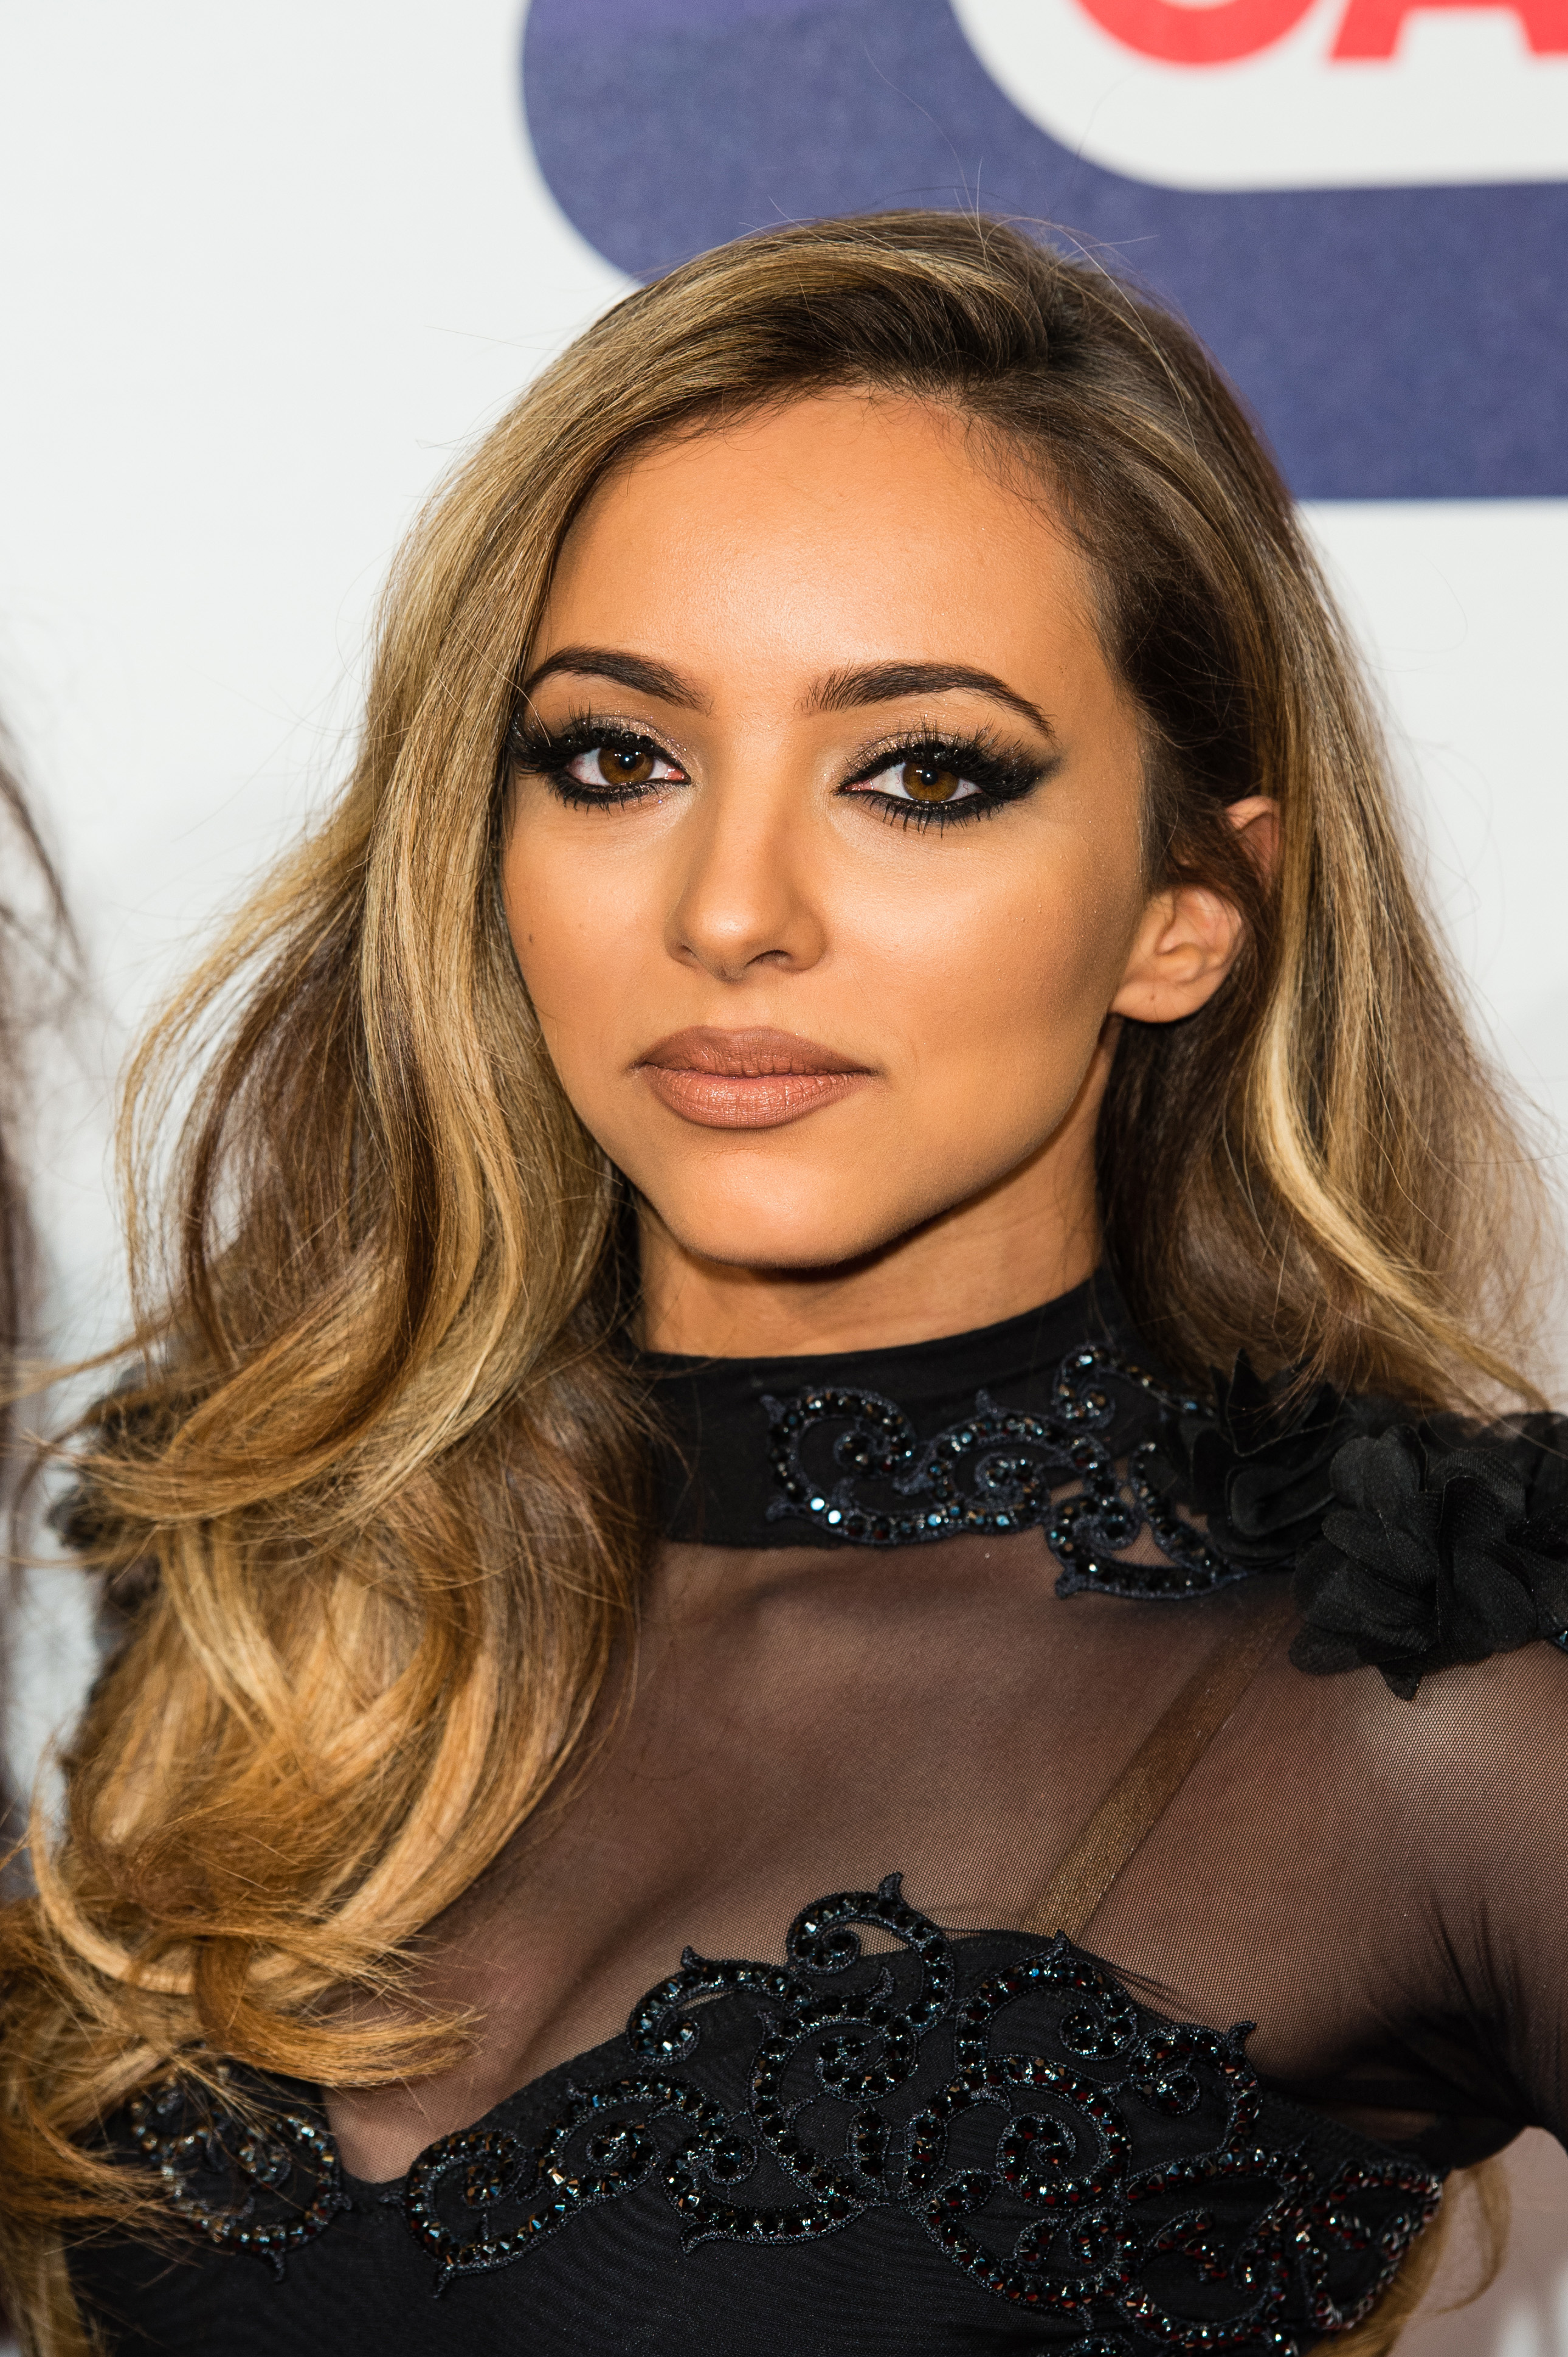 Jade Thirlwall nudes (55 pictures), cleavage Porno, Instagram, braless 2019